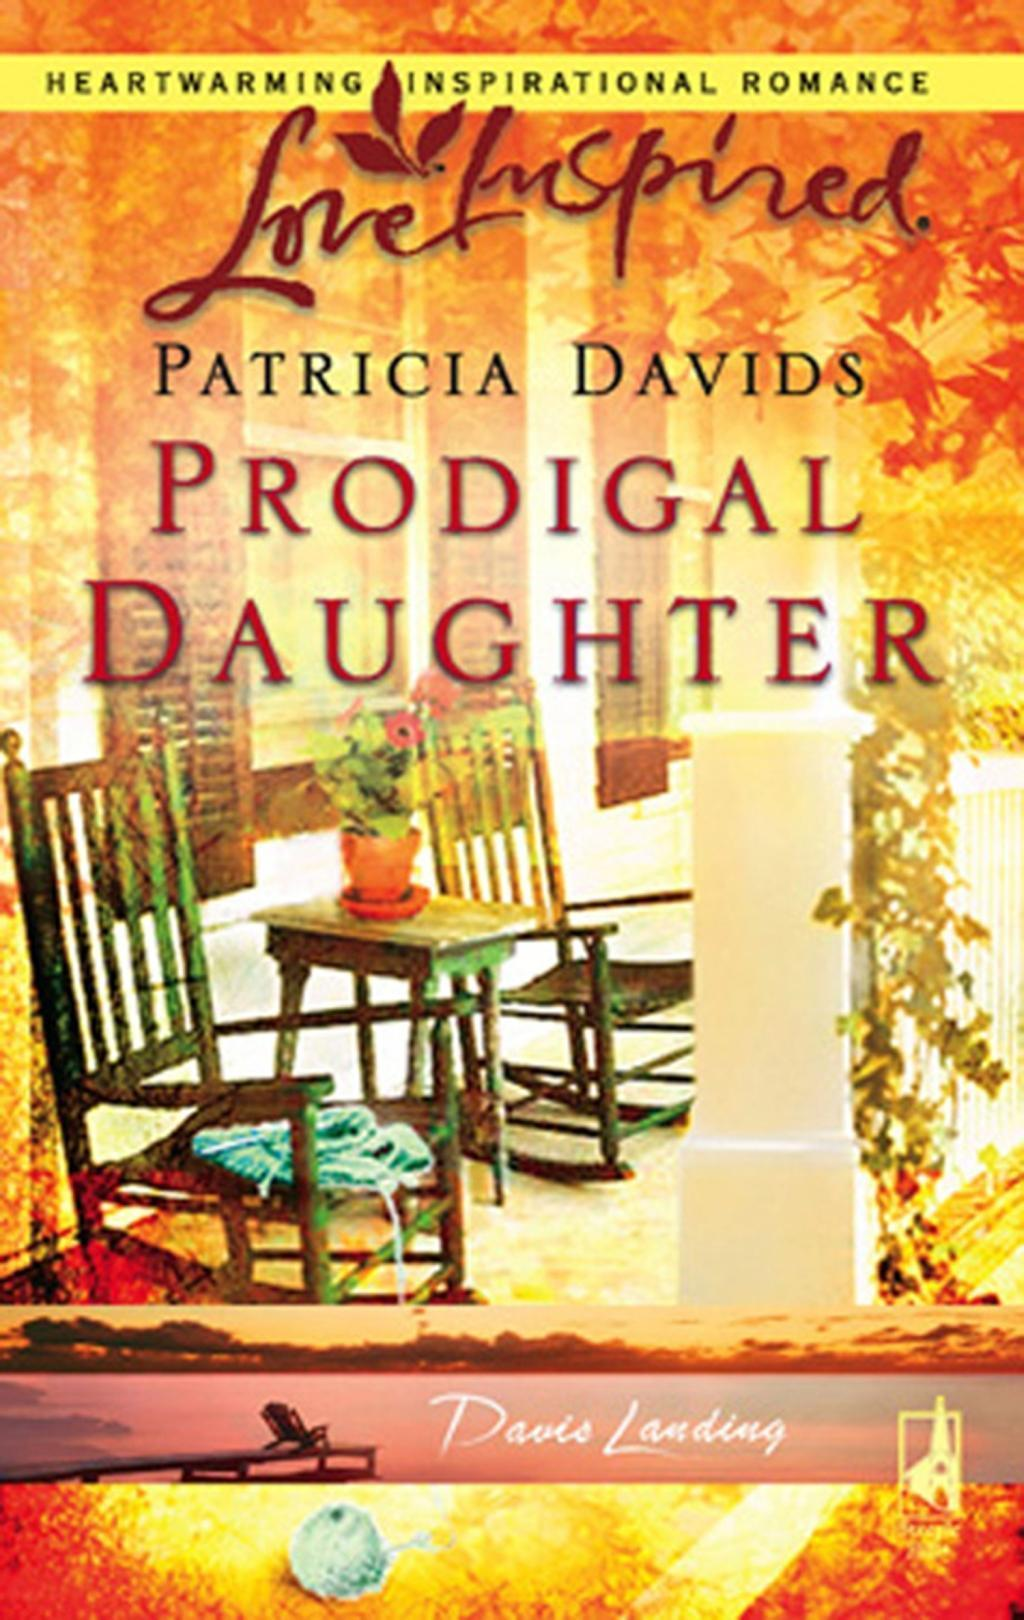 Prodigal Daughter (Mills & Boon Love Inspired) (Davis Landing, Book 5)